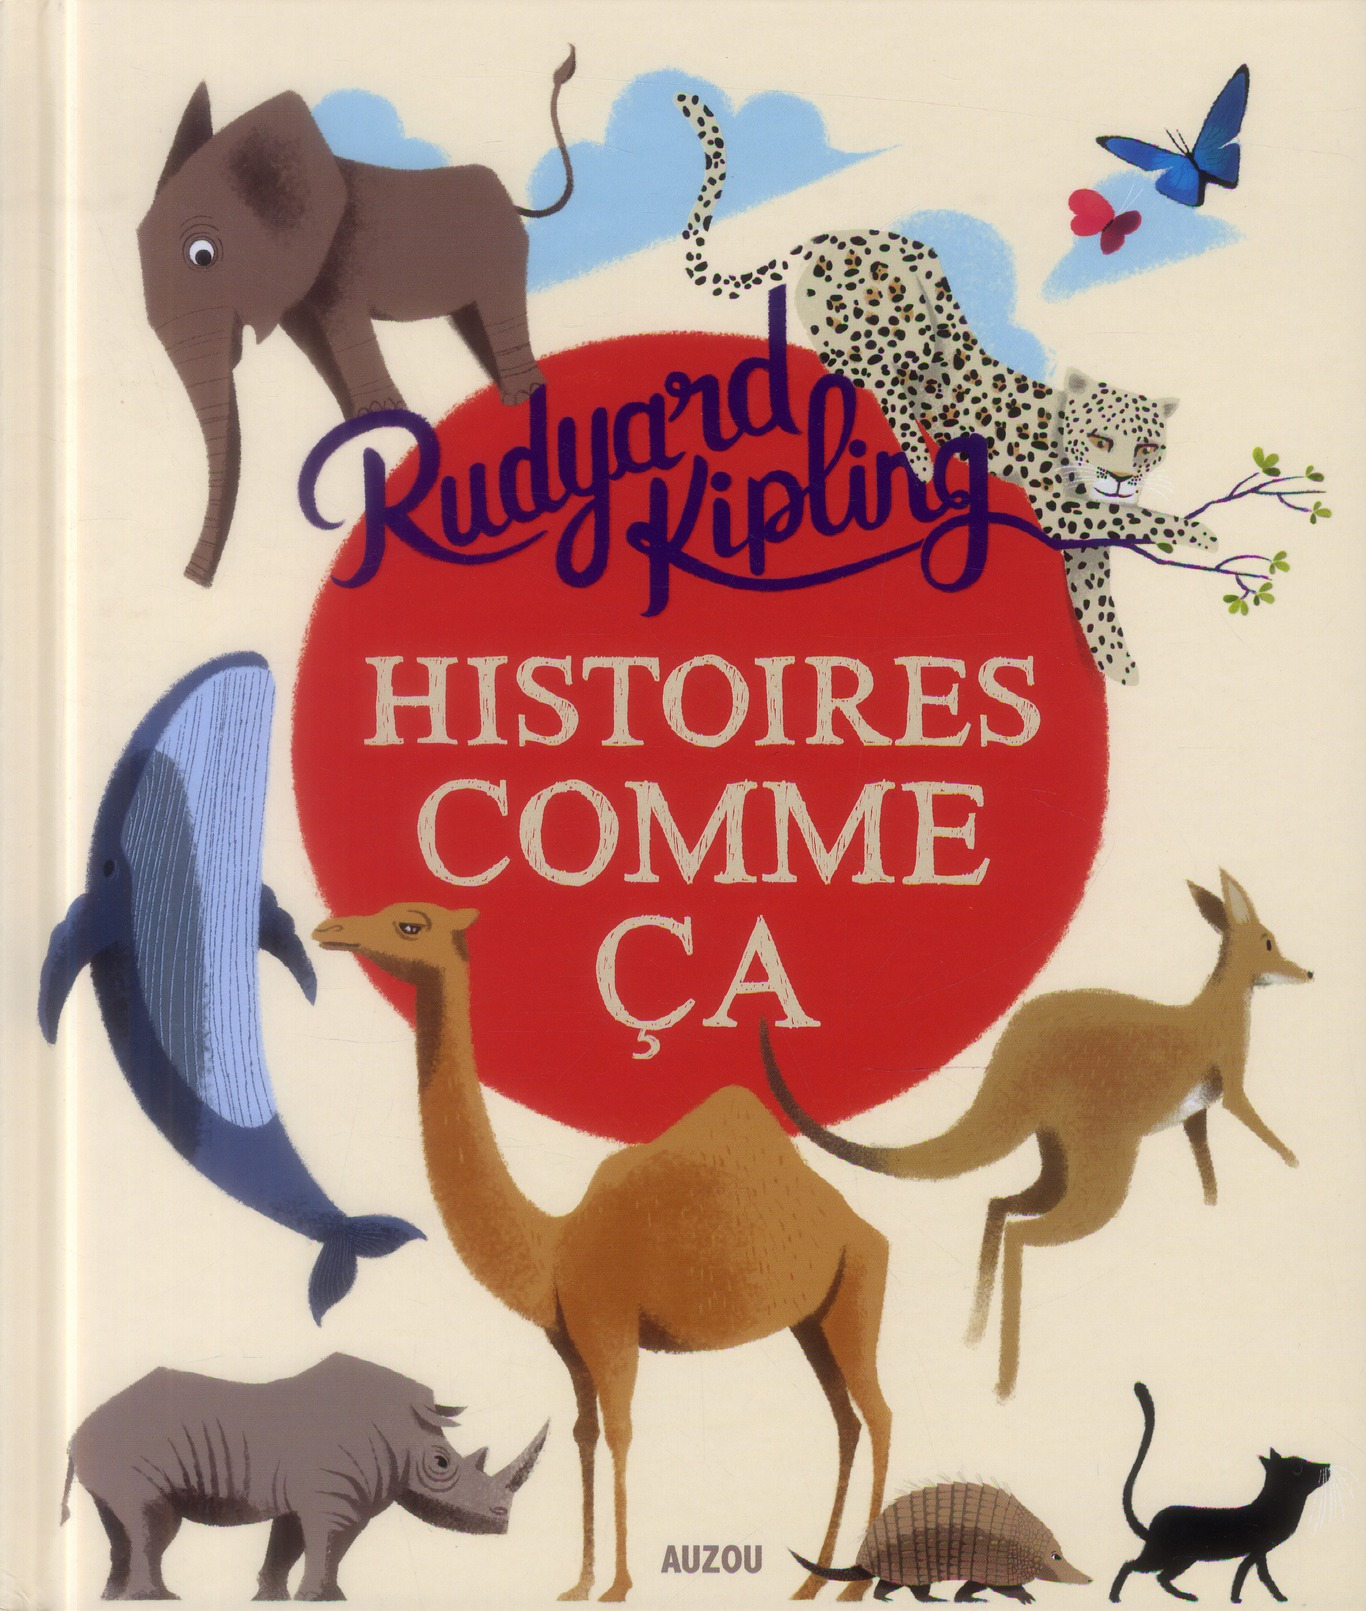 HISTOIRES COMME CA (COLL. RECUEIL UNIVERSEL)